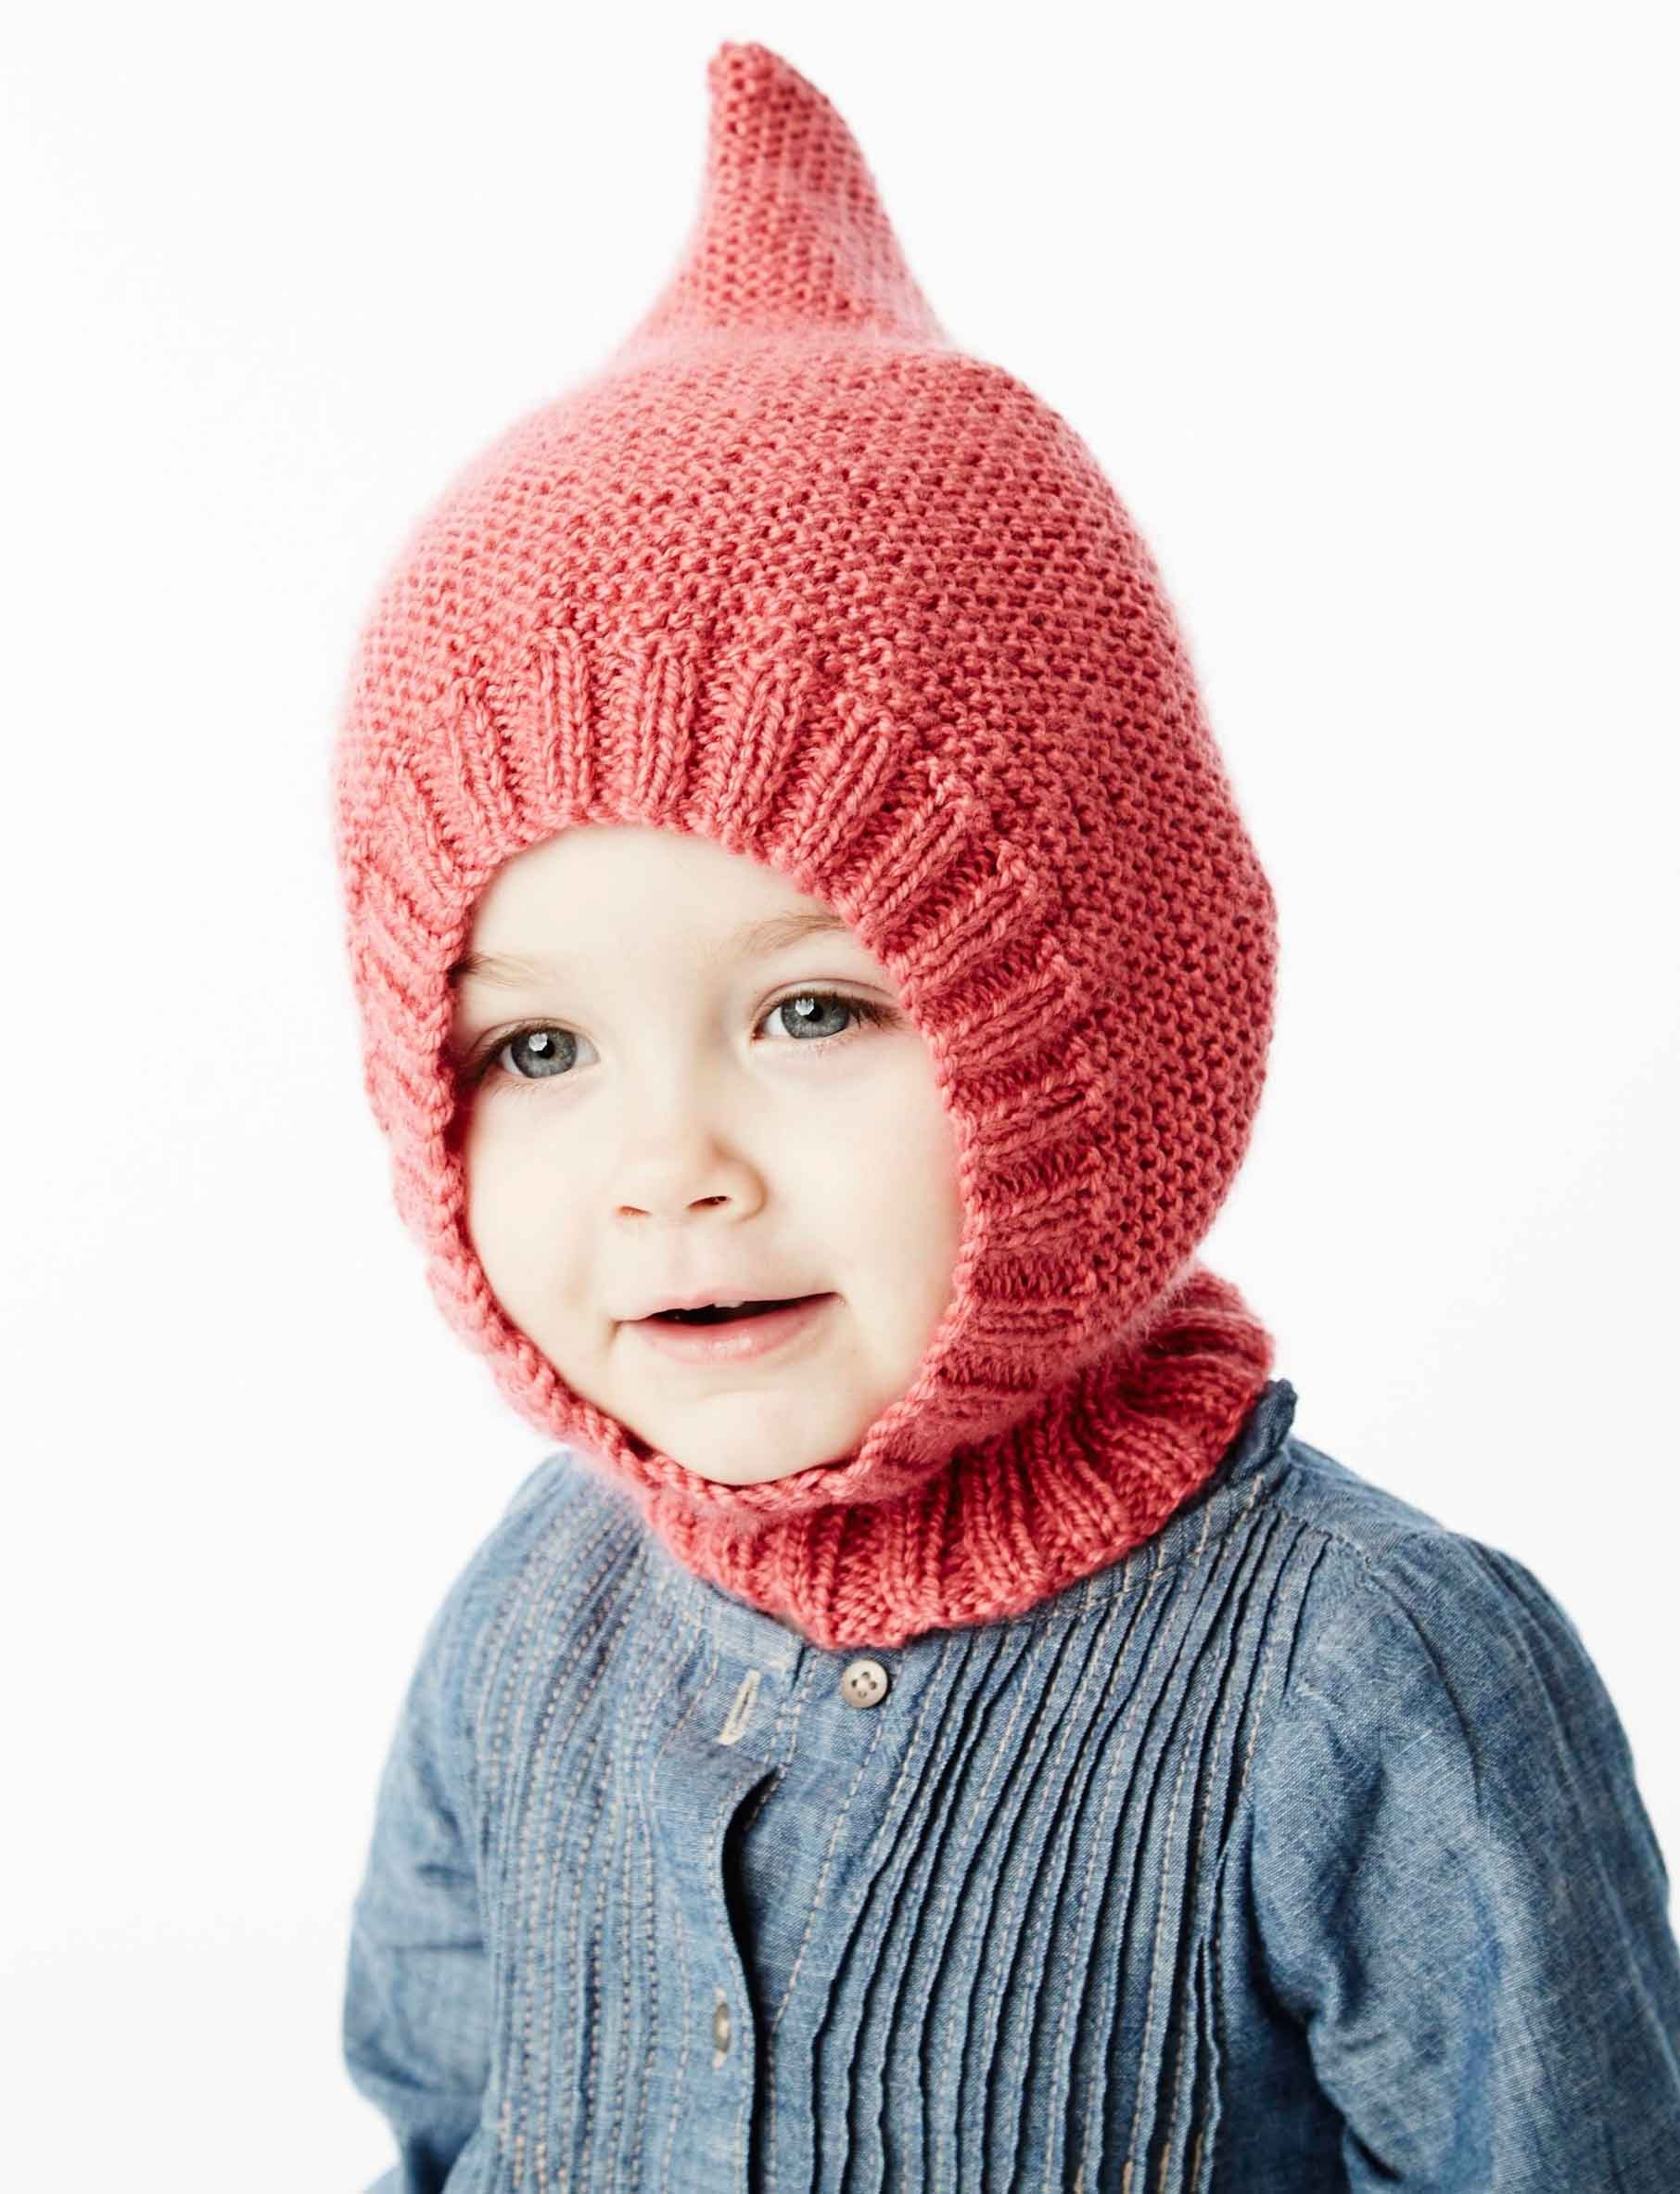 Knitting Pattern For Gnome Hat : Bernat Little Gnome Hat, Knit Pattern Yarnspirations